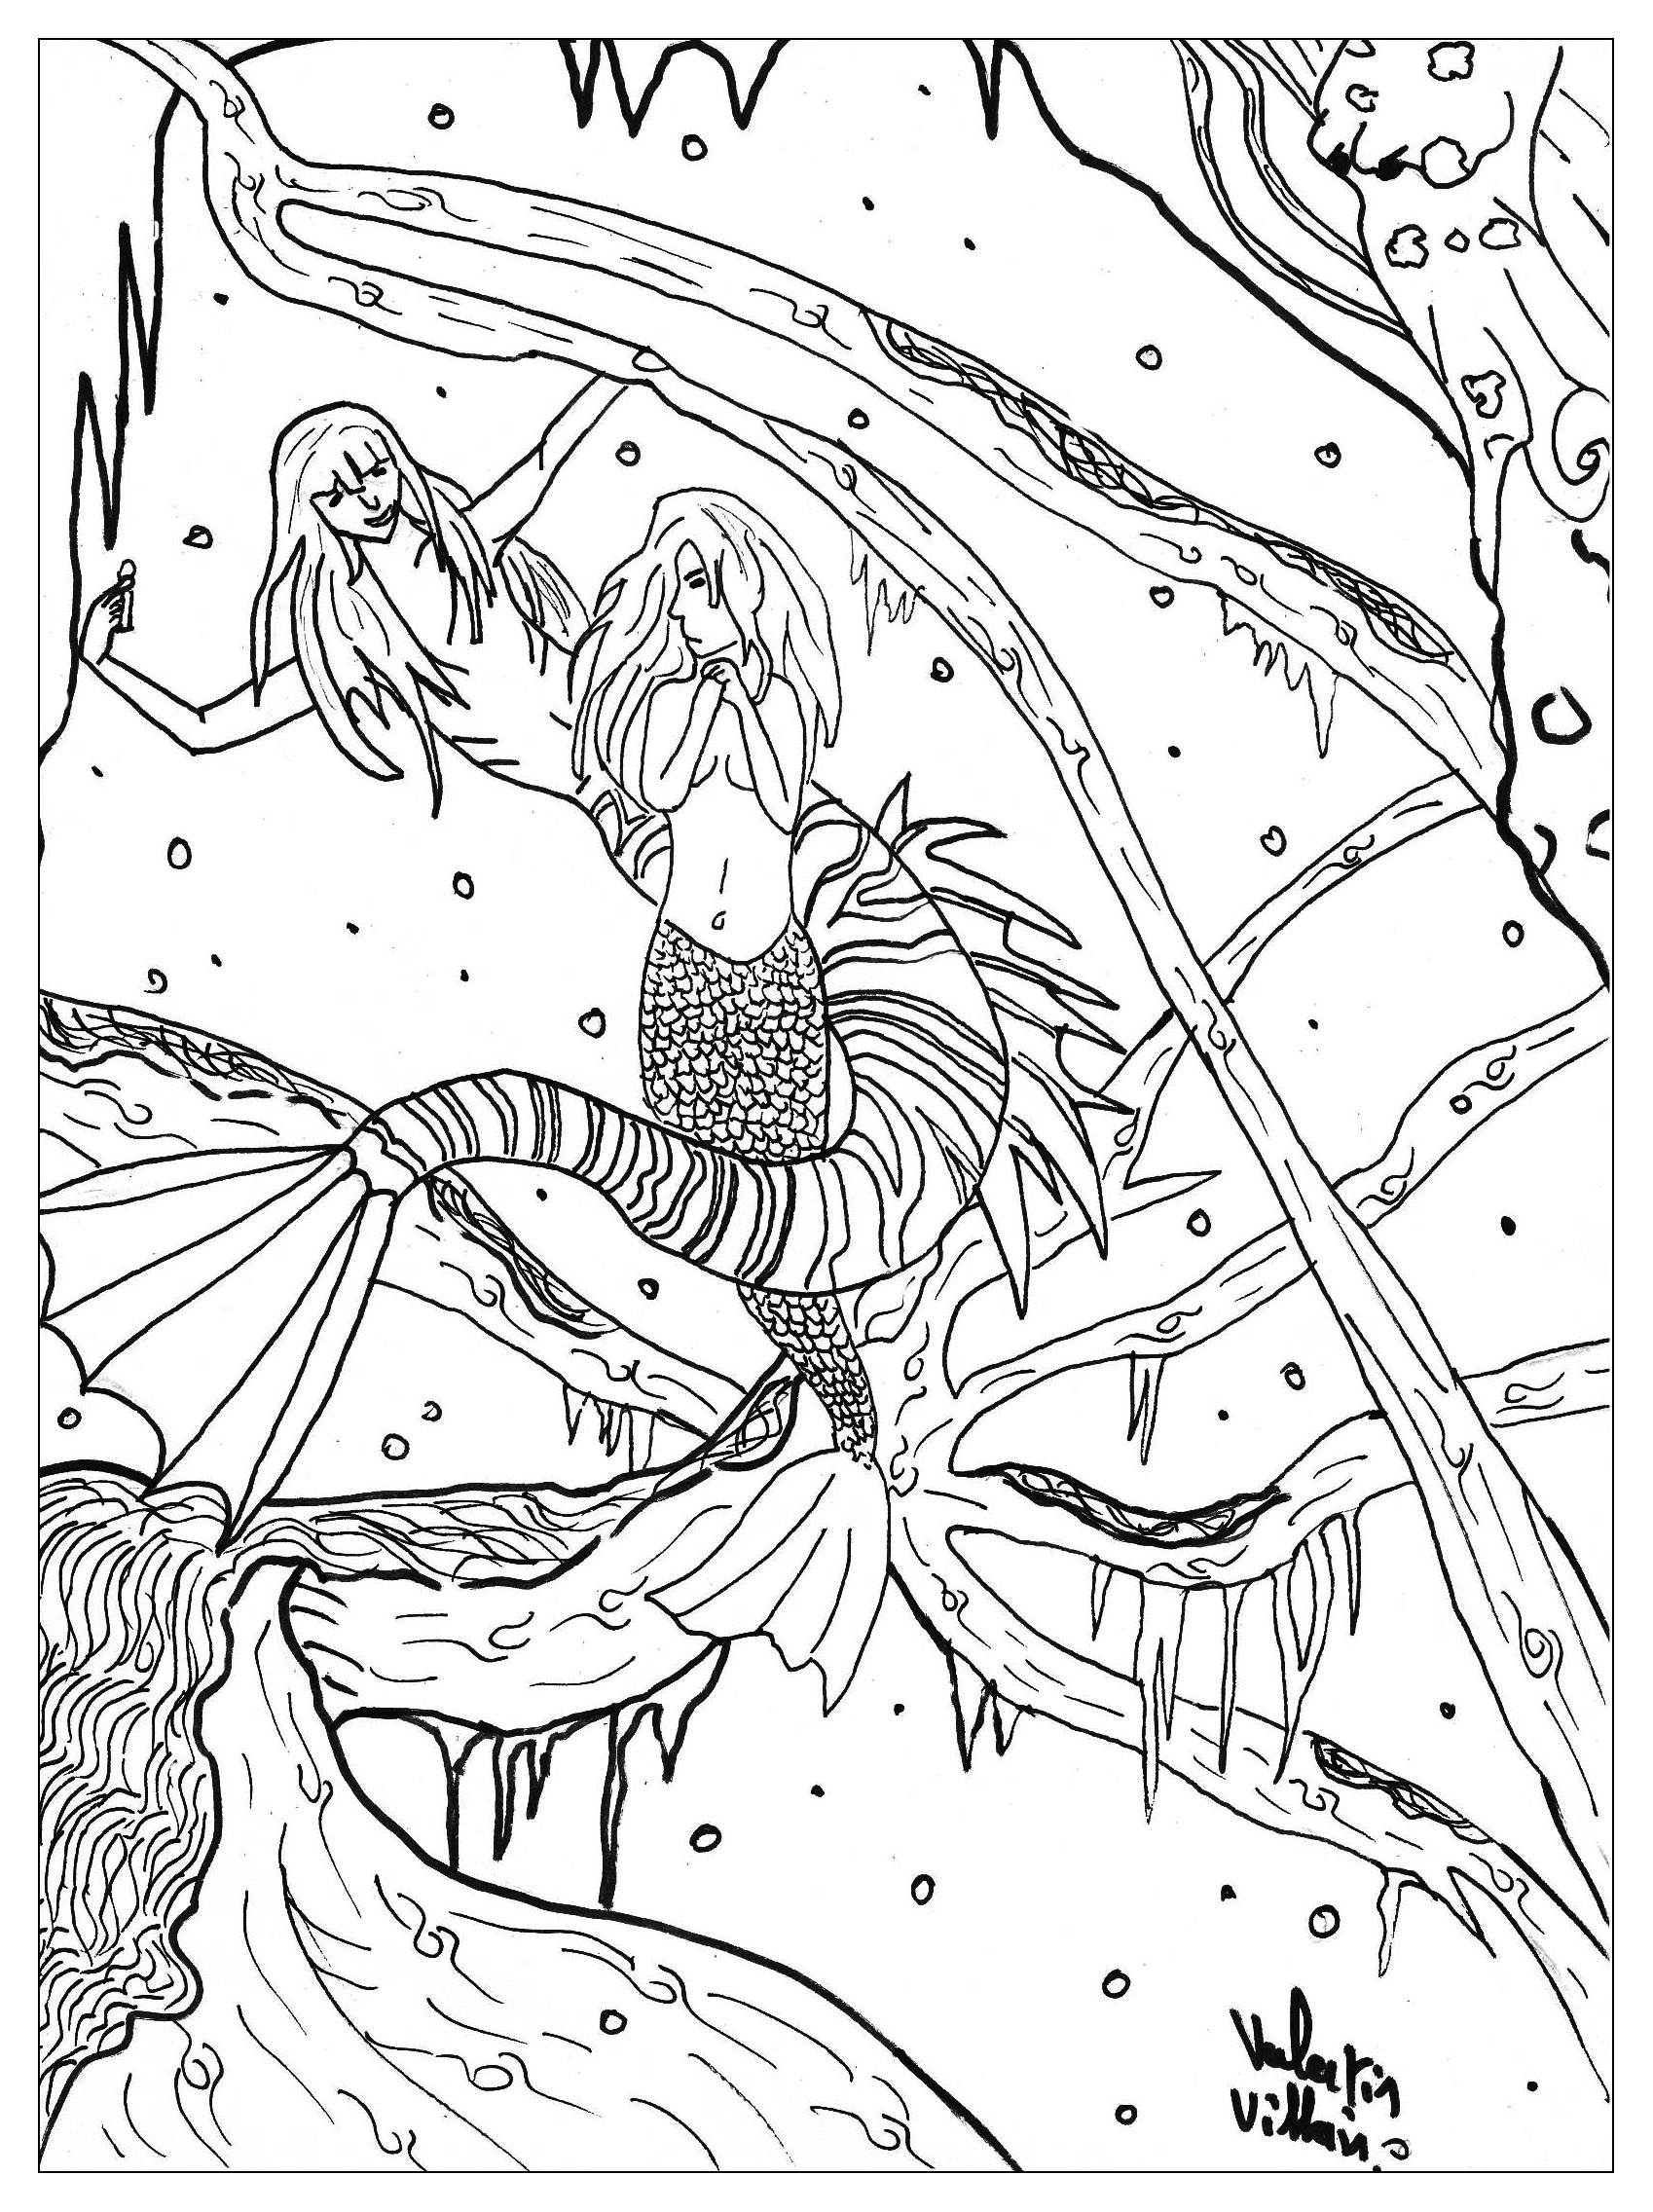 Coloring page adults little mermaid the great change for the little mermaid